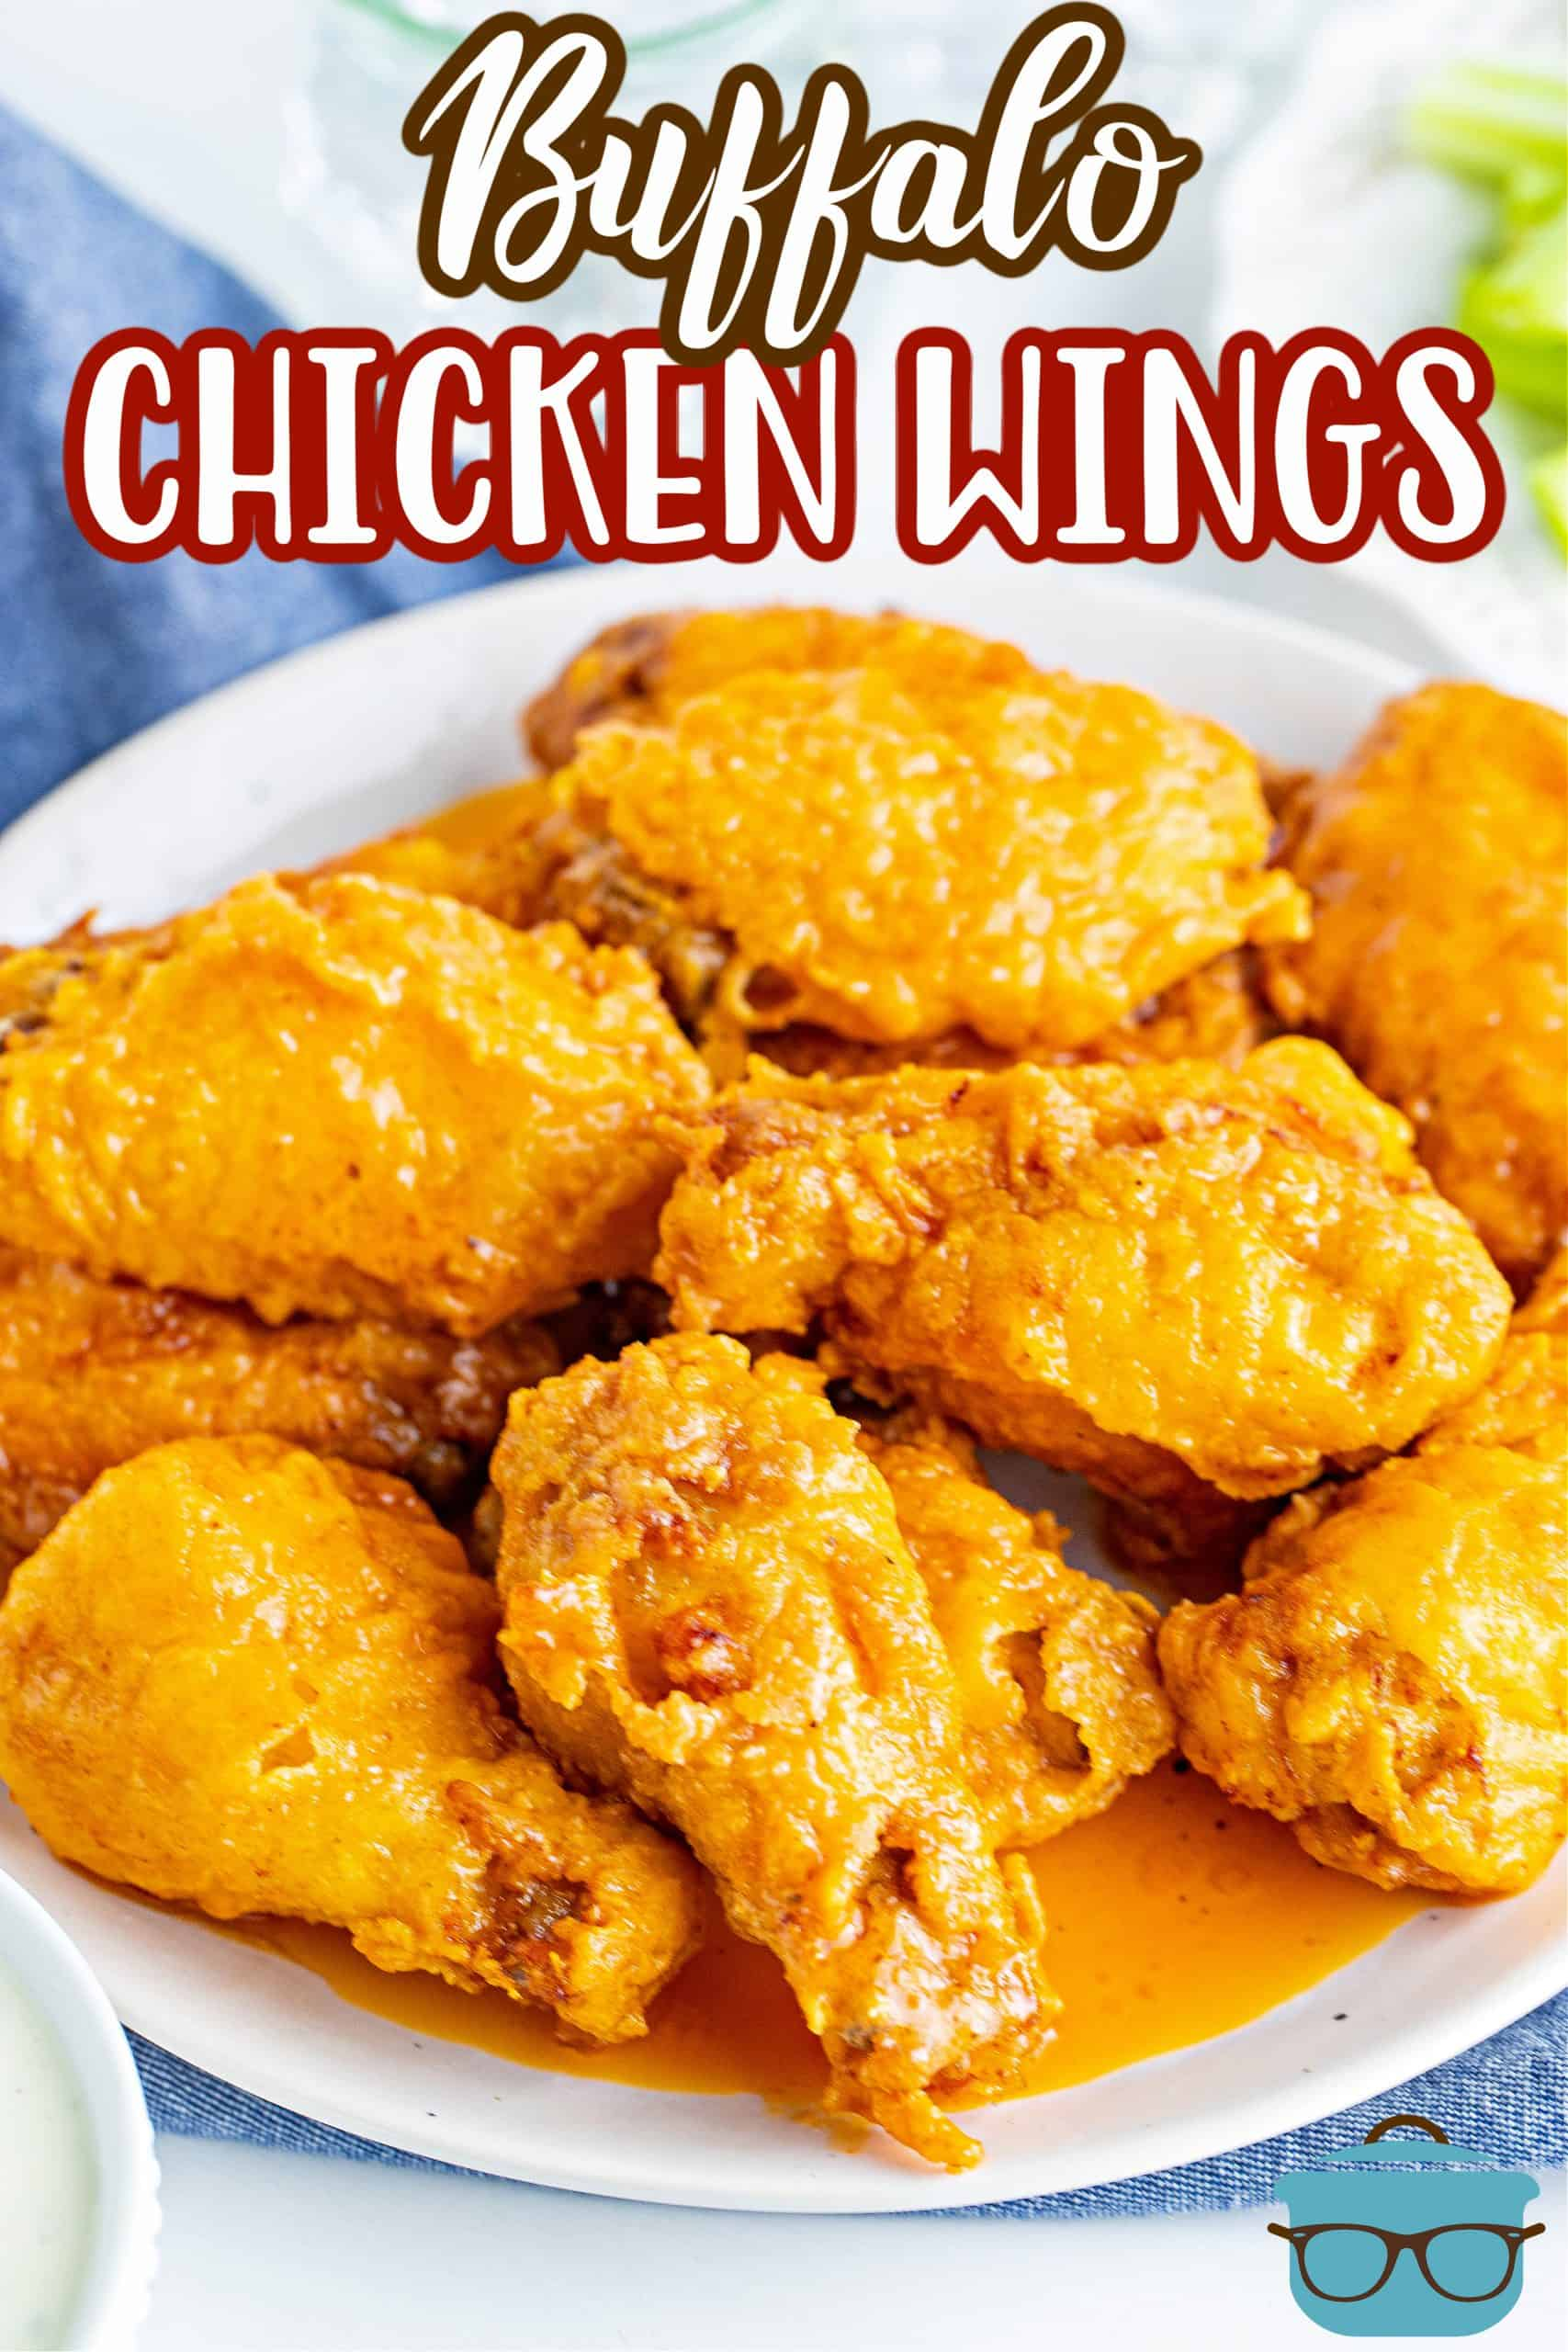 The Best Buffalo Chicken Wings are soaked in buttermilk, then breaded and fried. Finally they are topped with a delicious buttery hot sauce!